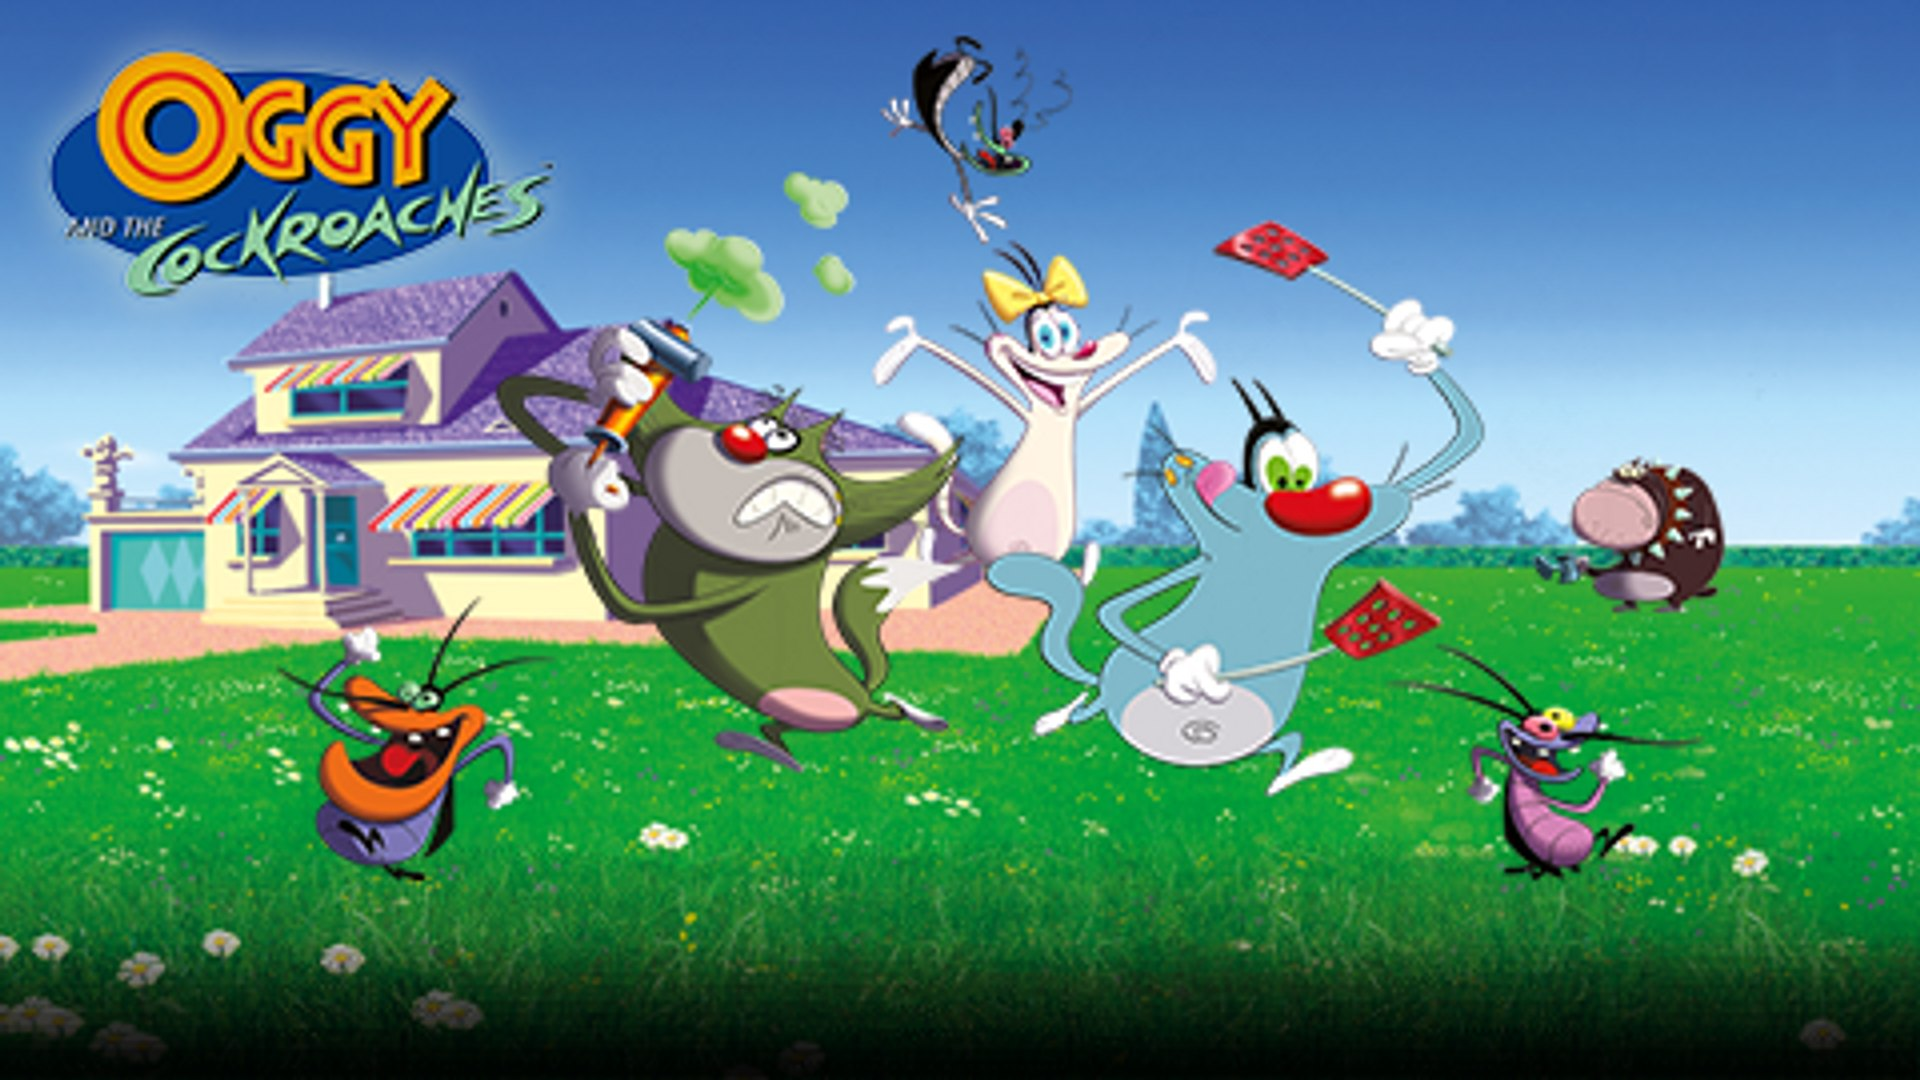 Oggy And The Cockroaches Hd (#1180805) - HD Wallpaper ...